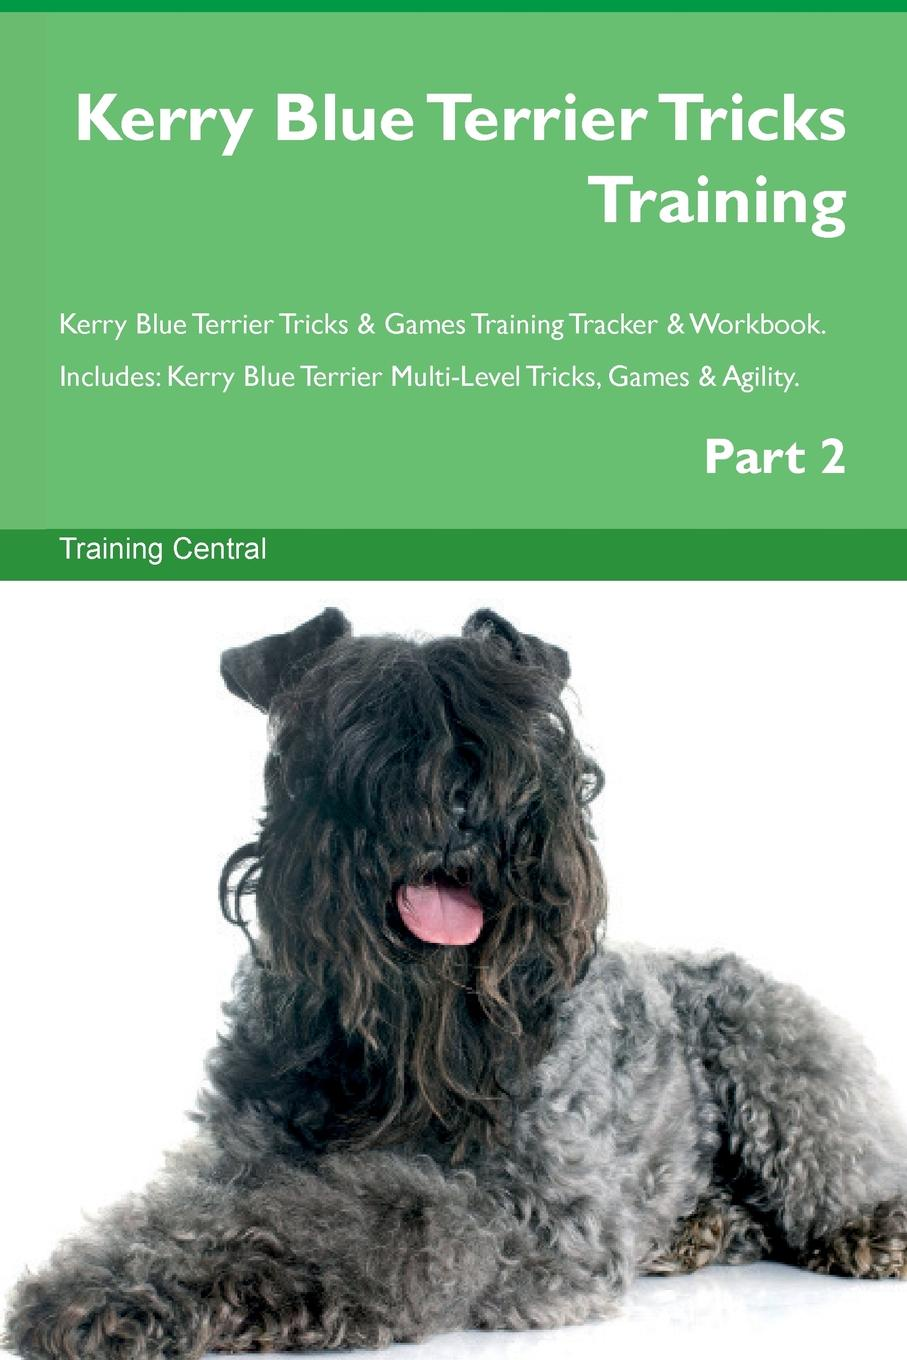 Training Central Kerry Blue Terrier Tricks & Games Tracker Workbook. Includes. Multi-Level Tricks, Agility. Part 2